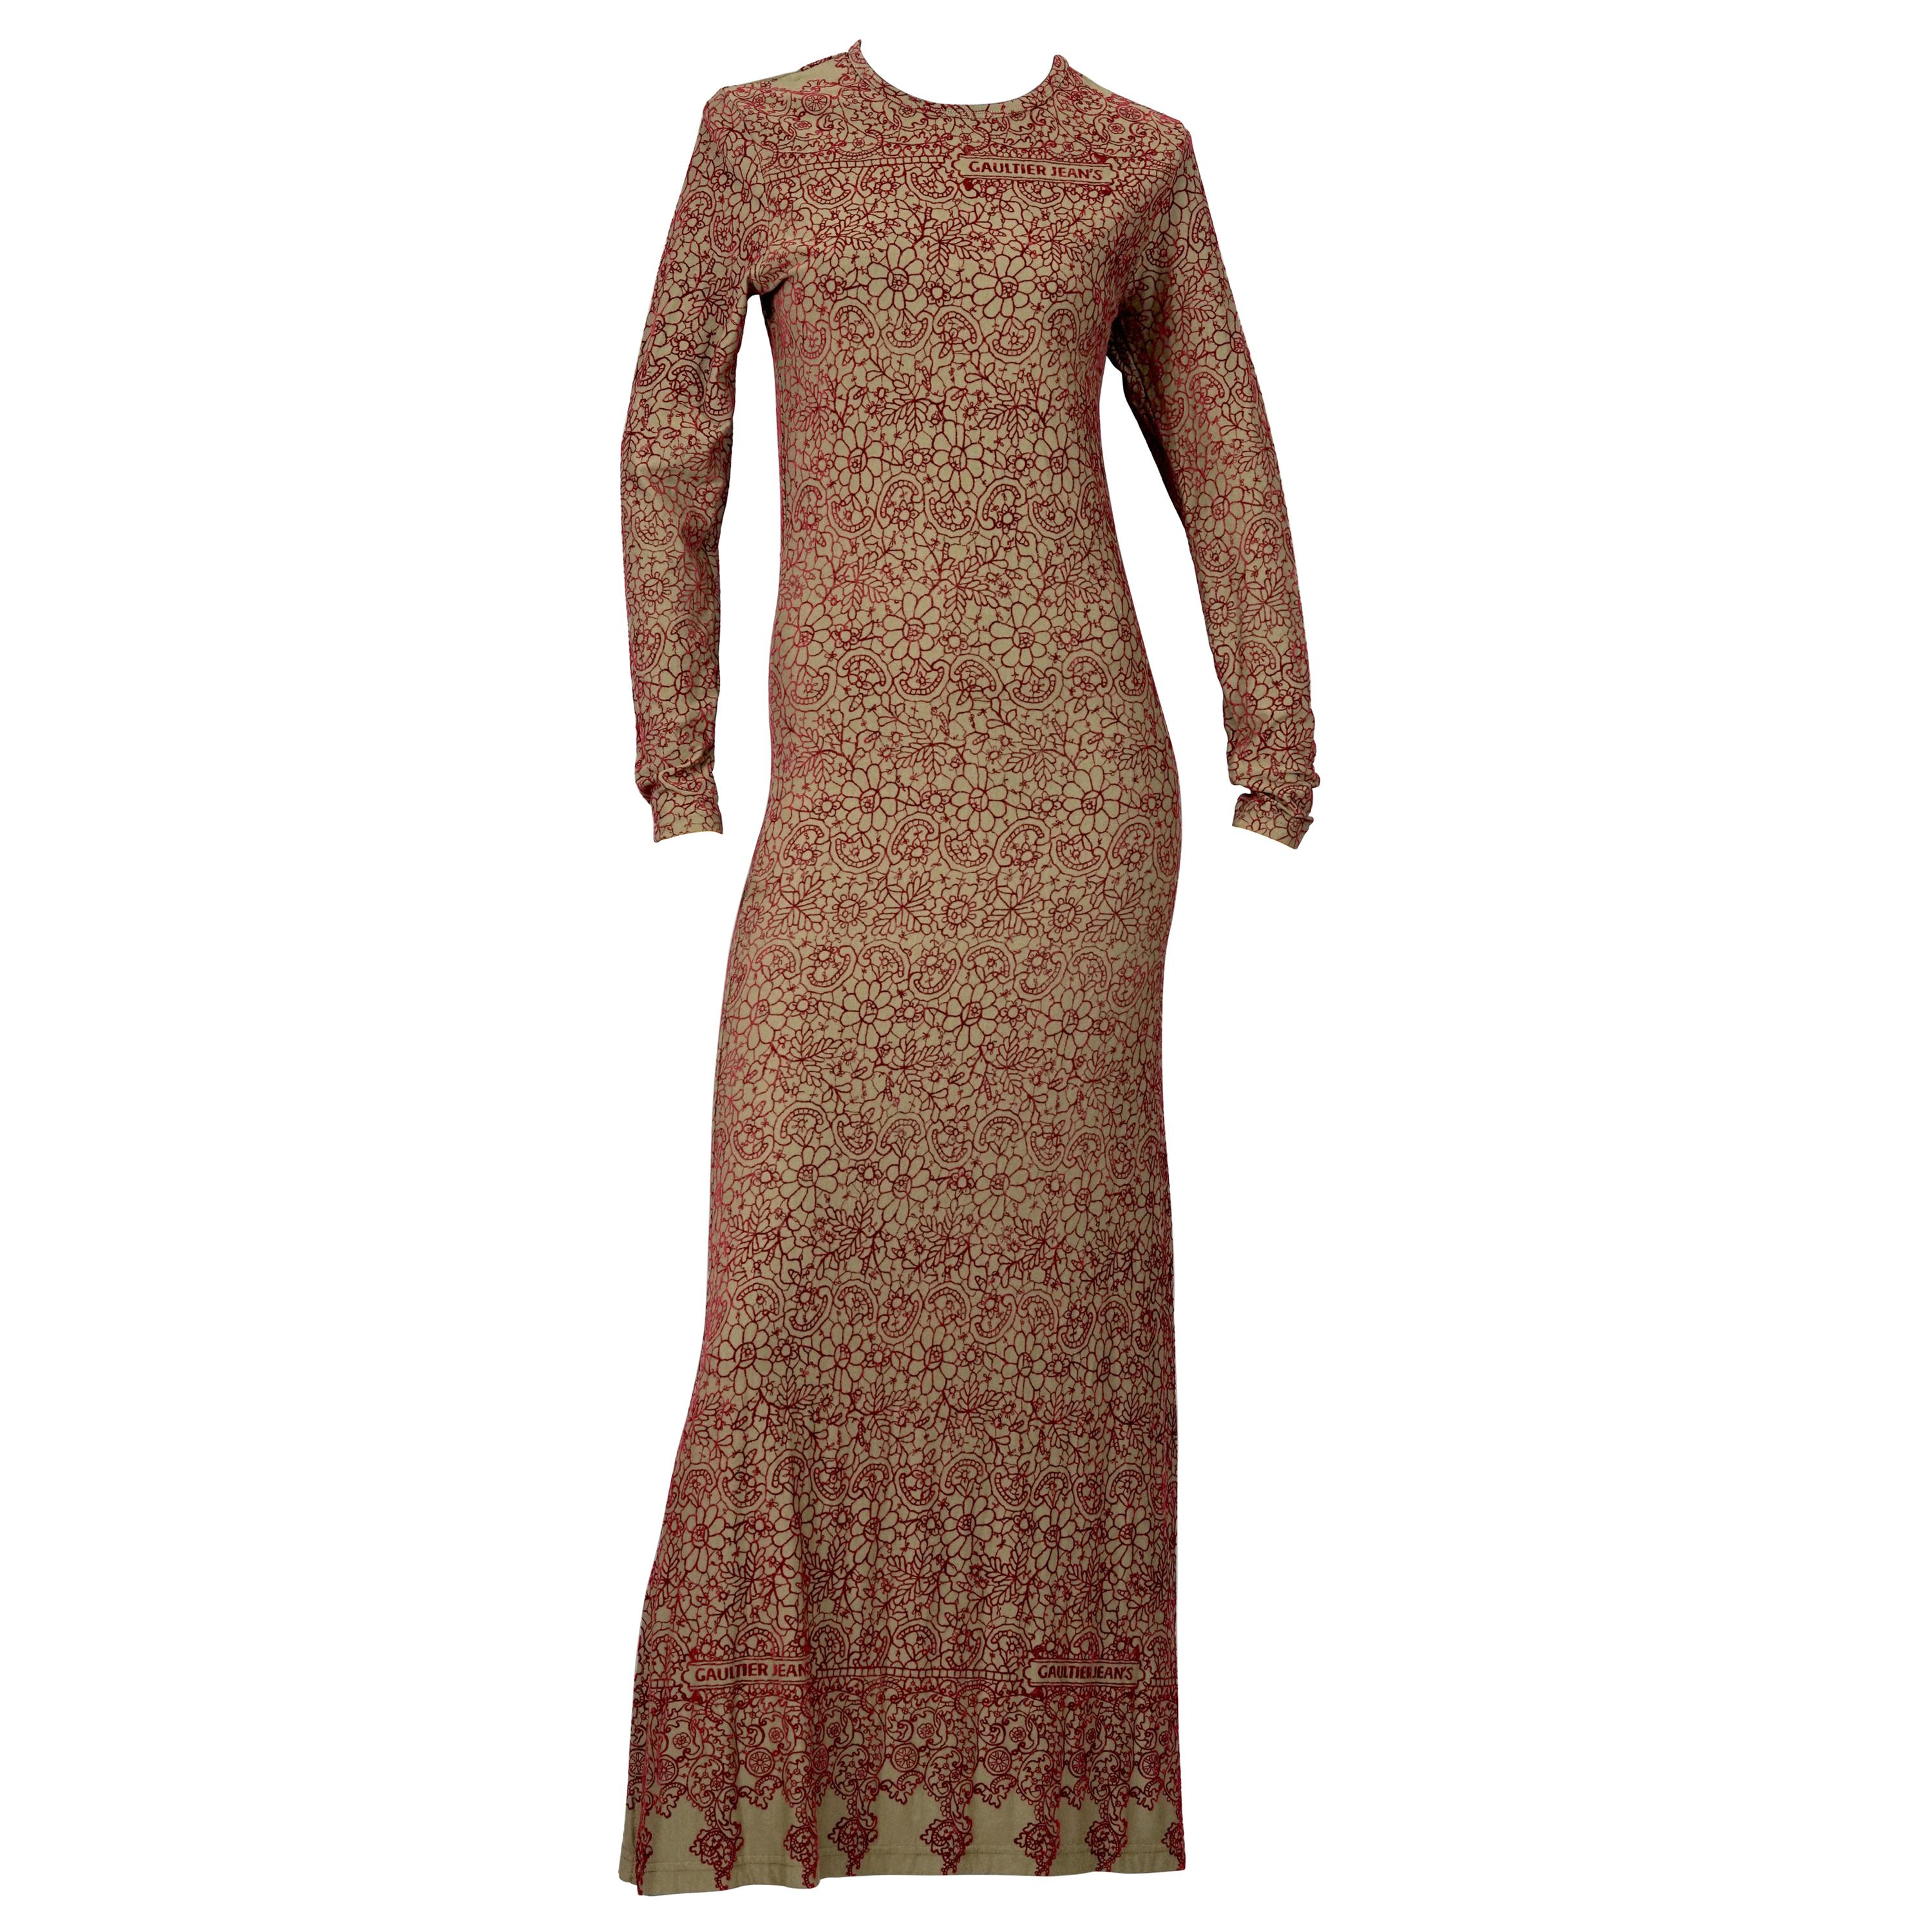 Vintage JEAN PAUL GAULTIER Embroidered Tattoo Pattern Maxi Dress